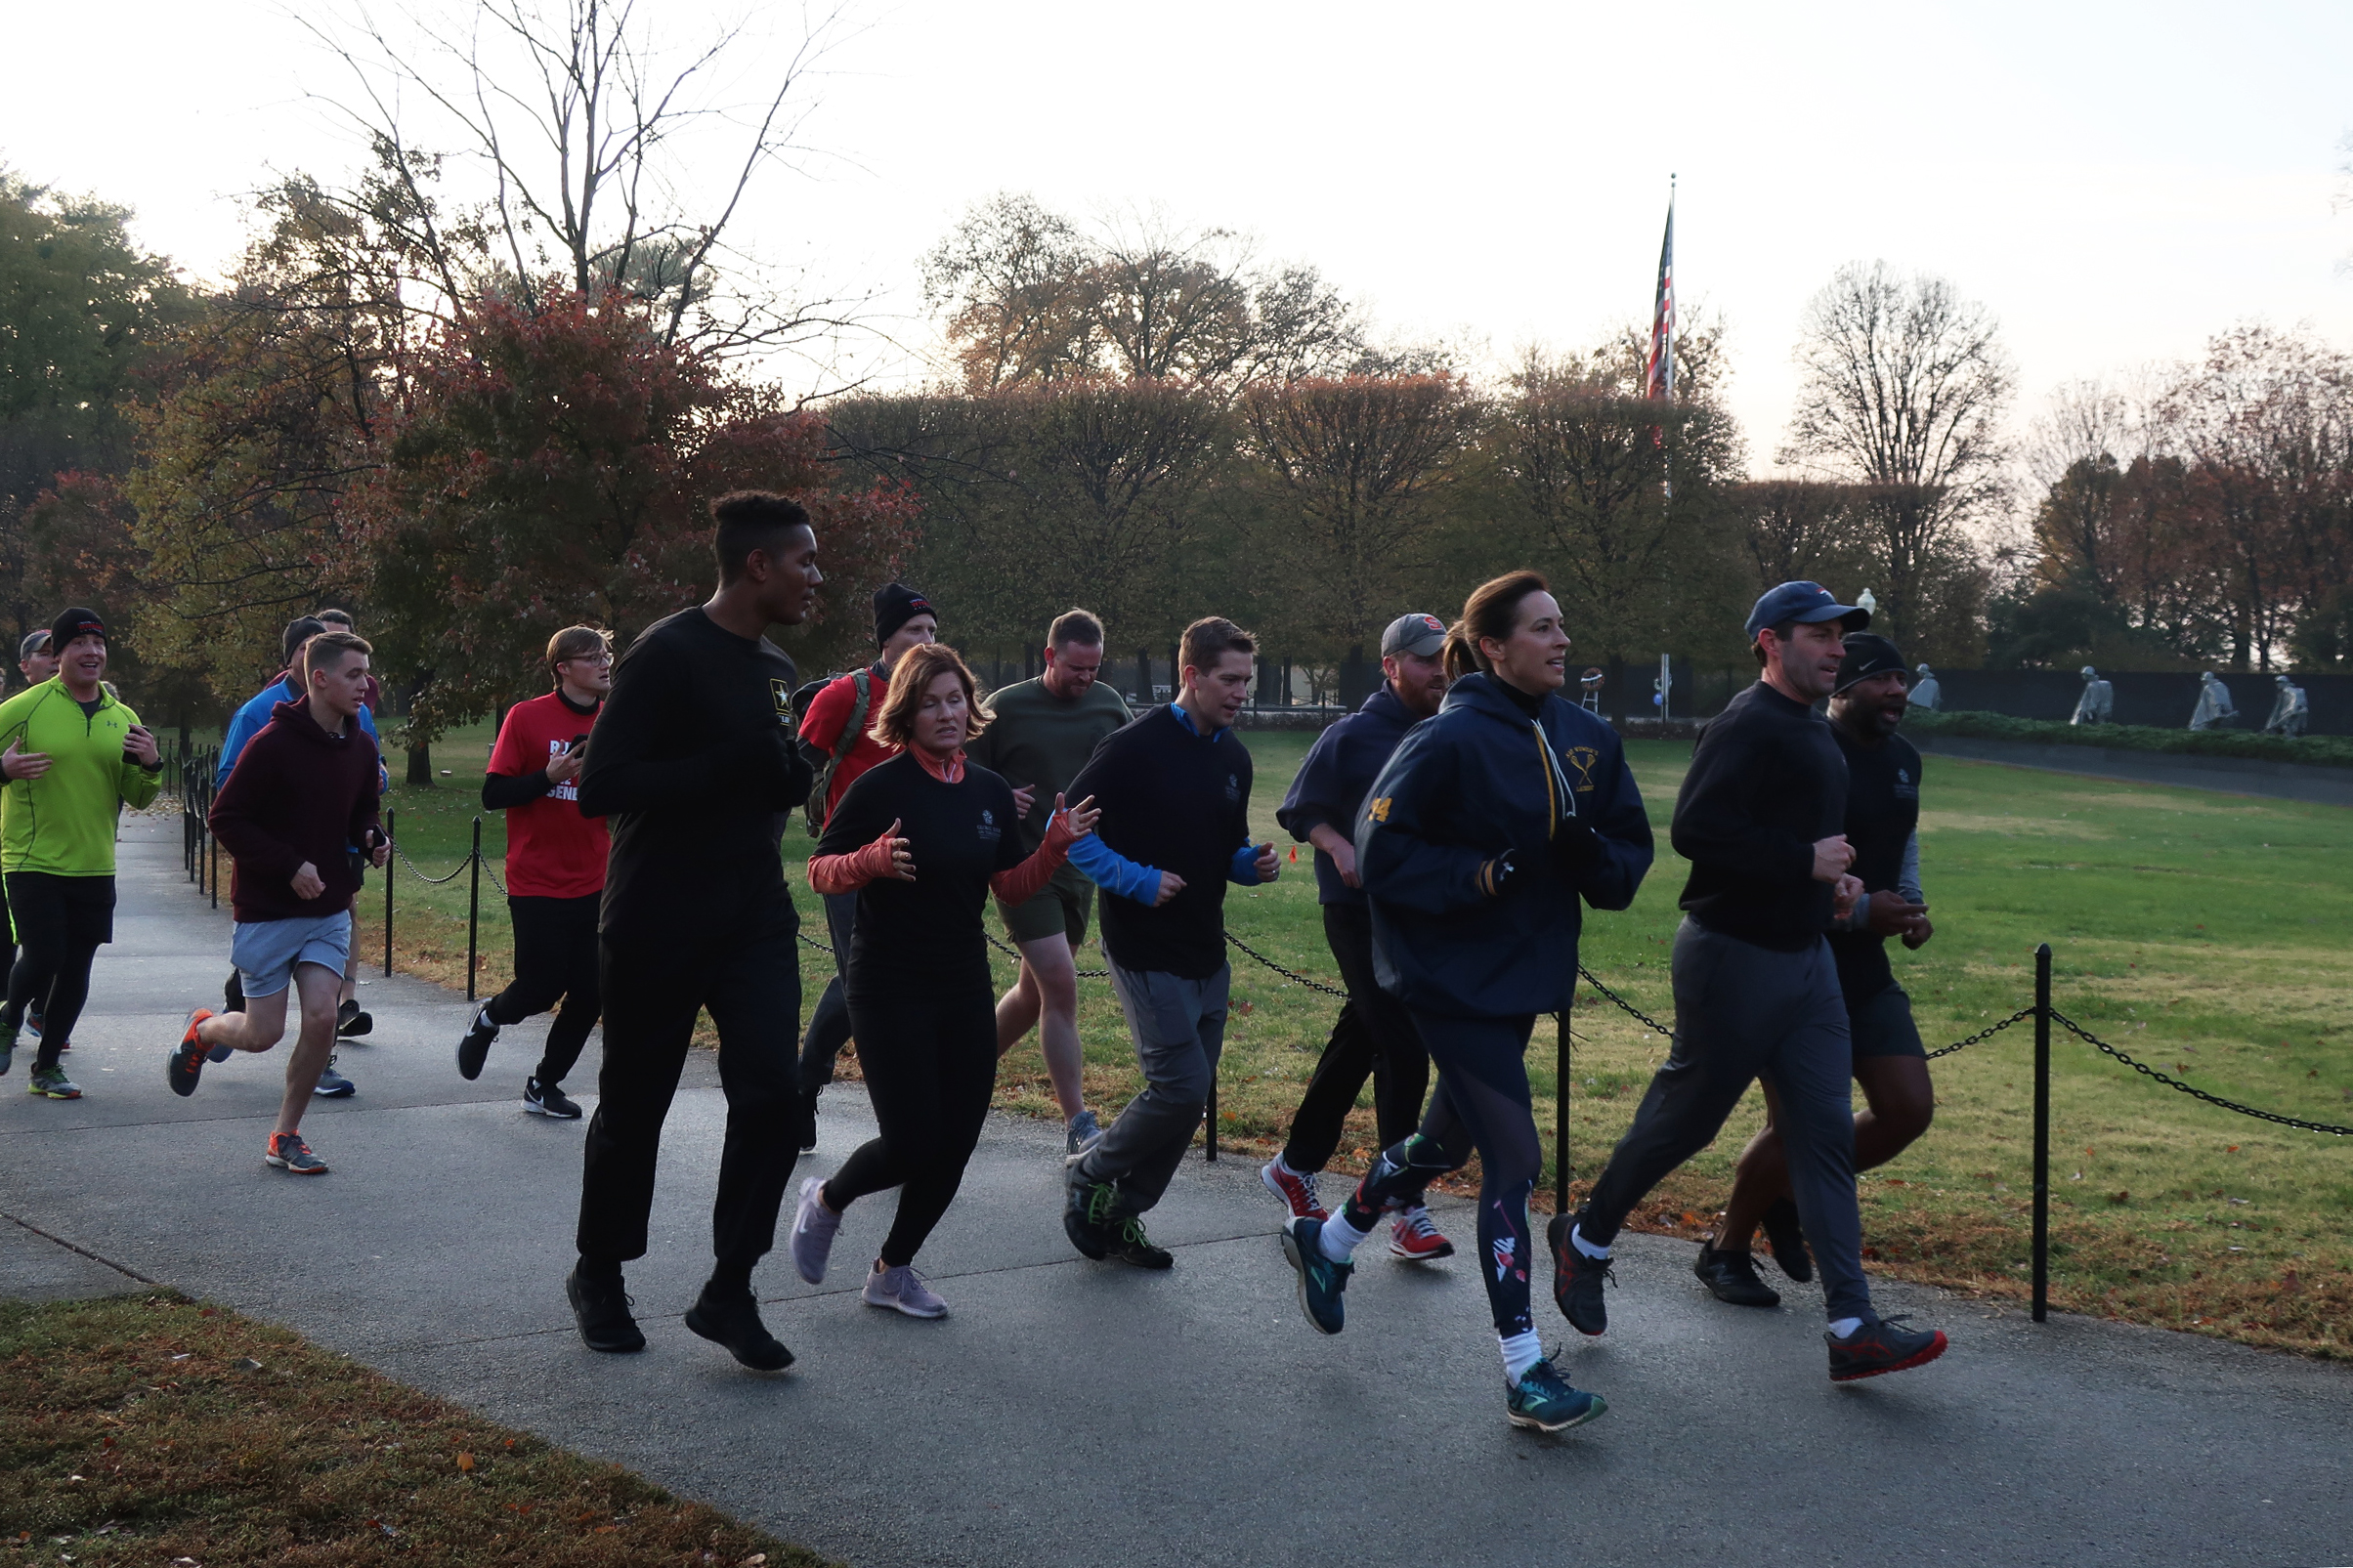 Rep. Jason Crow leads a group of Congressional veterans on a jog through possible Global War on Terrorism Memorial sites.